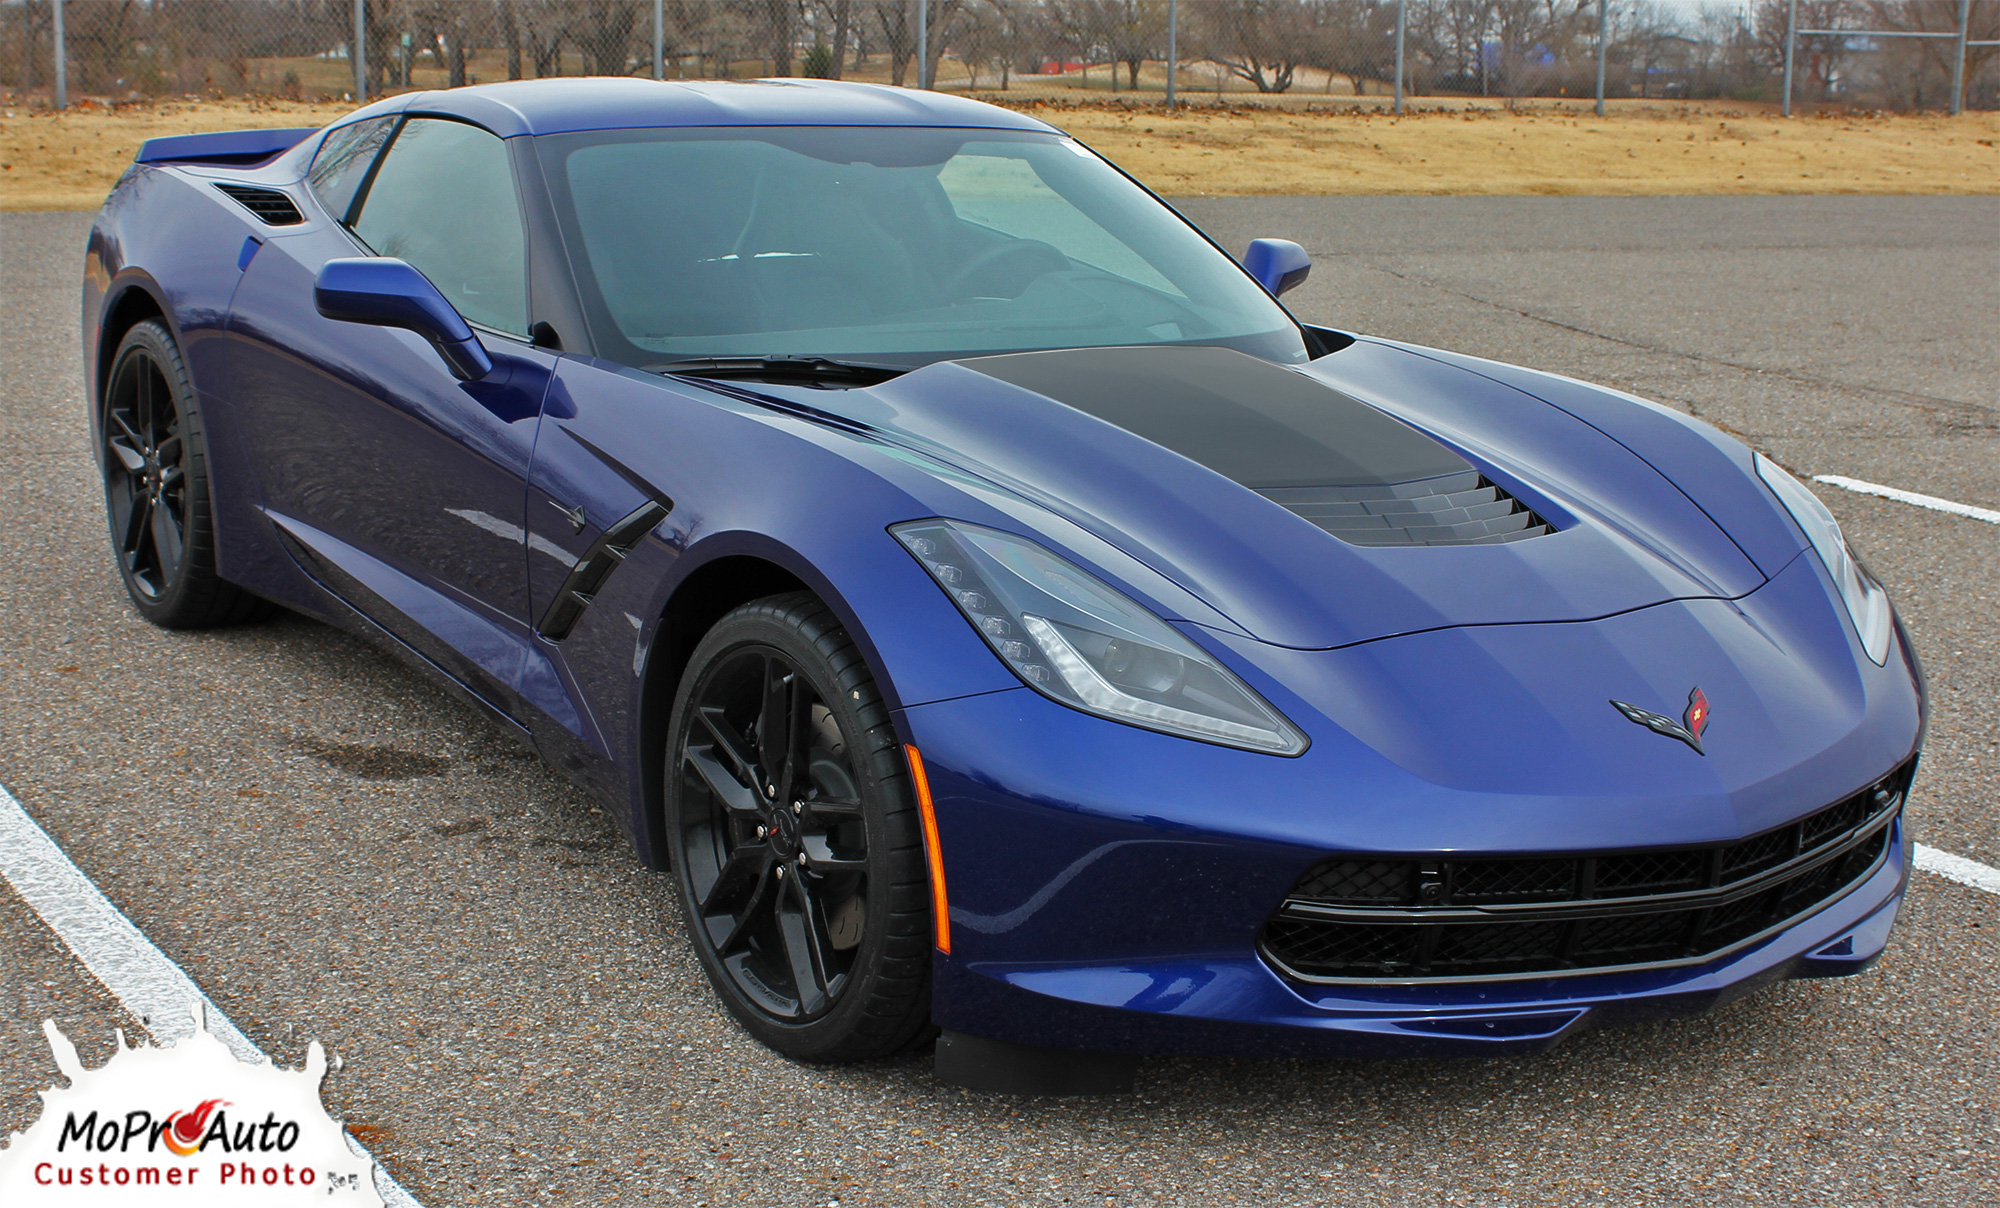 Chevy Corvette C7 Hood Blackout Vinyl Graphics Stripes Striping and Decal Kits for 2014 2015 2016 2017 2018 2019 Models